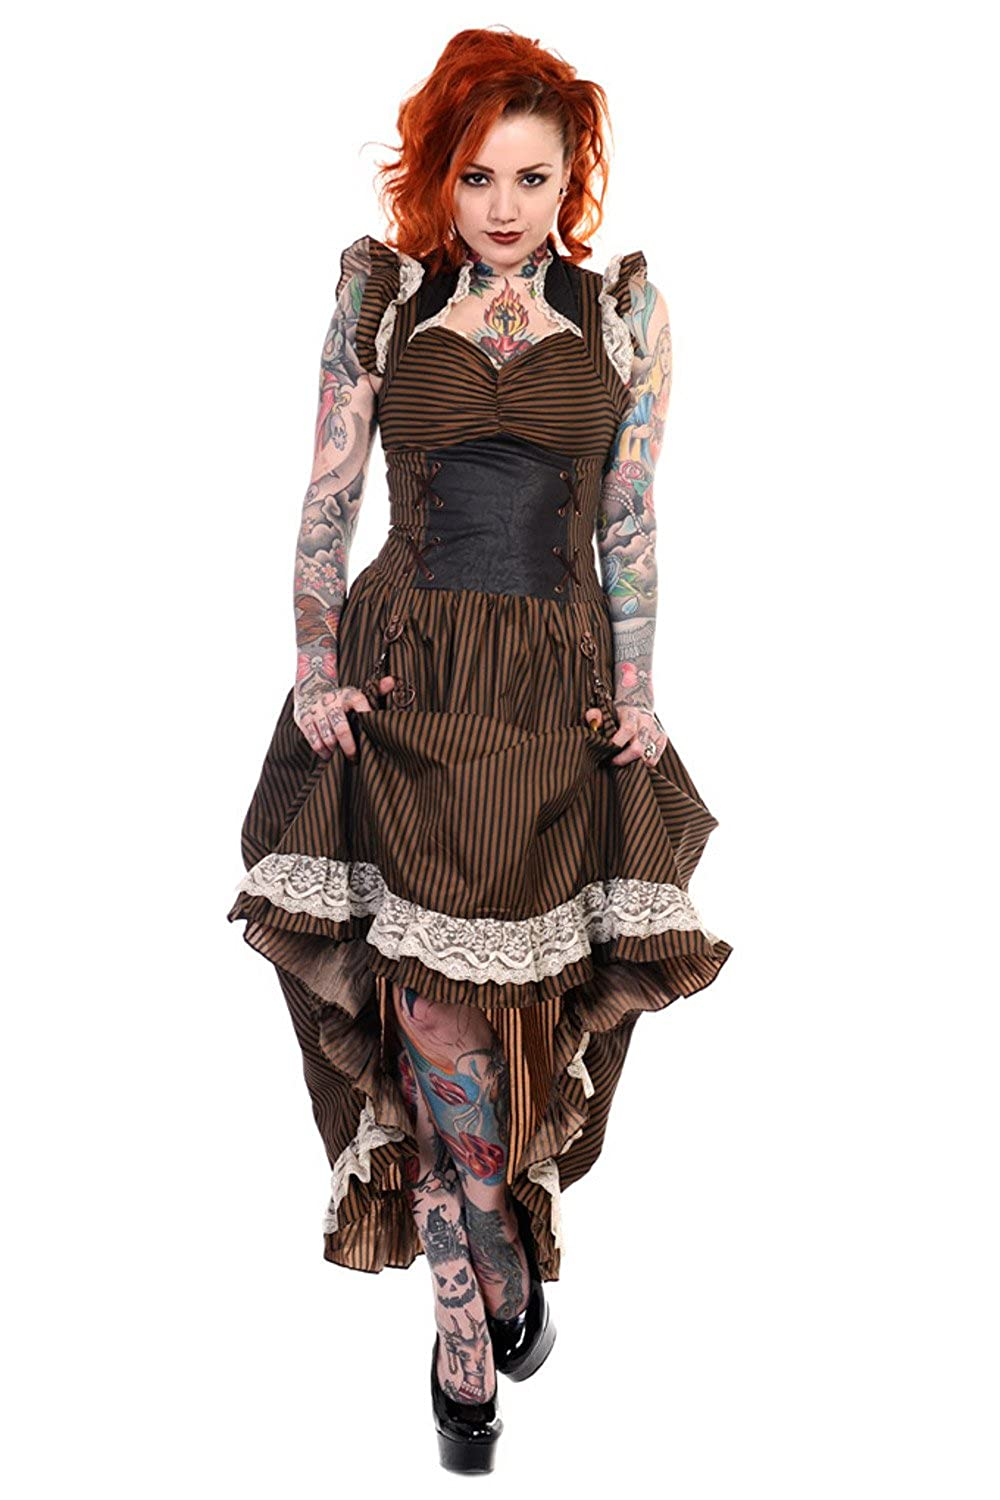 Stripe Steampunk Vintage Victorian Corset Dress $84.00 AT vintagedancer.com